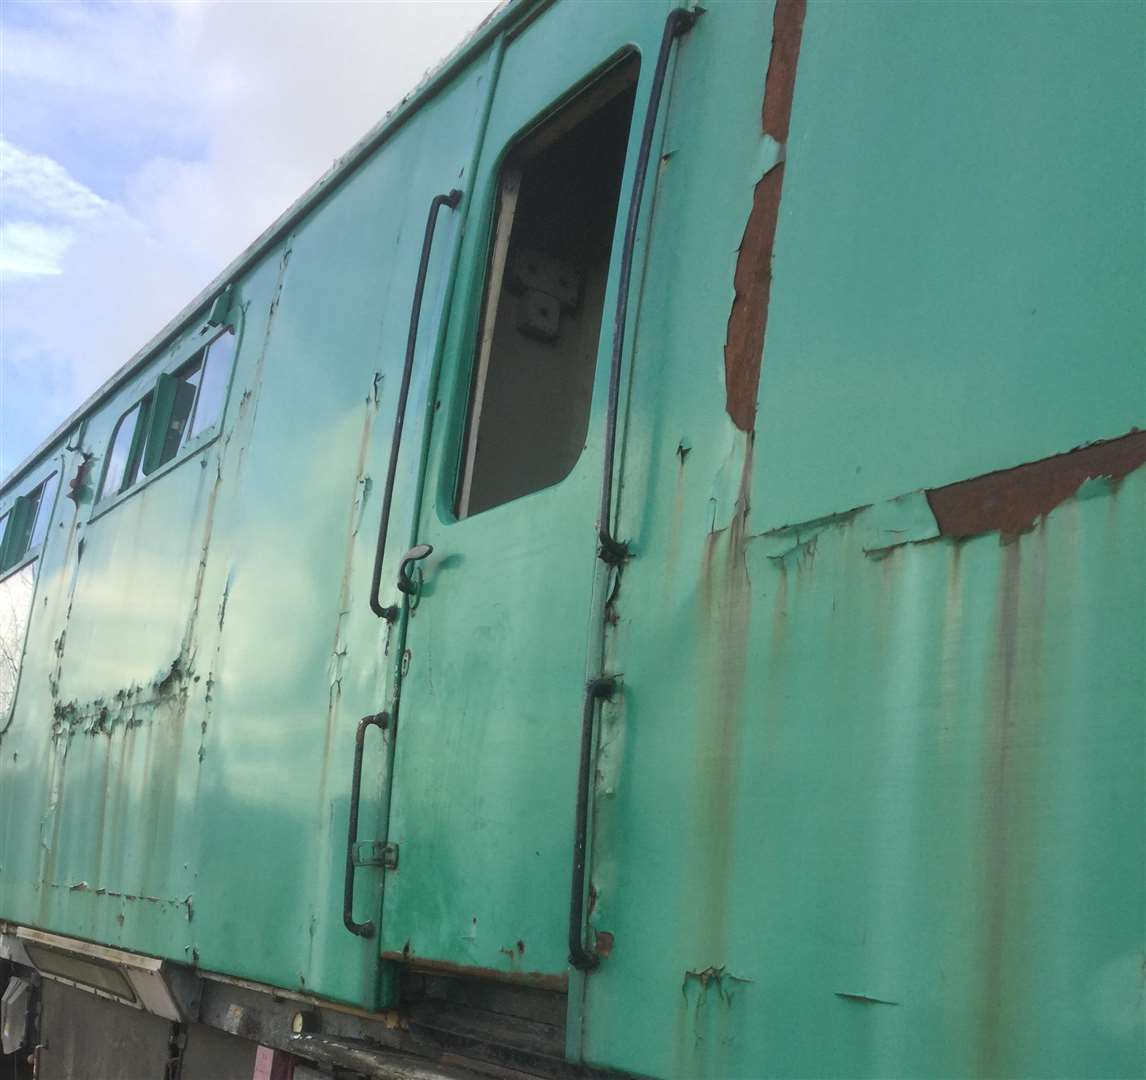 The mess coach where windows were smashed and lockers forced open